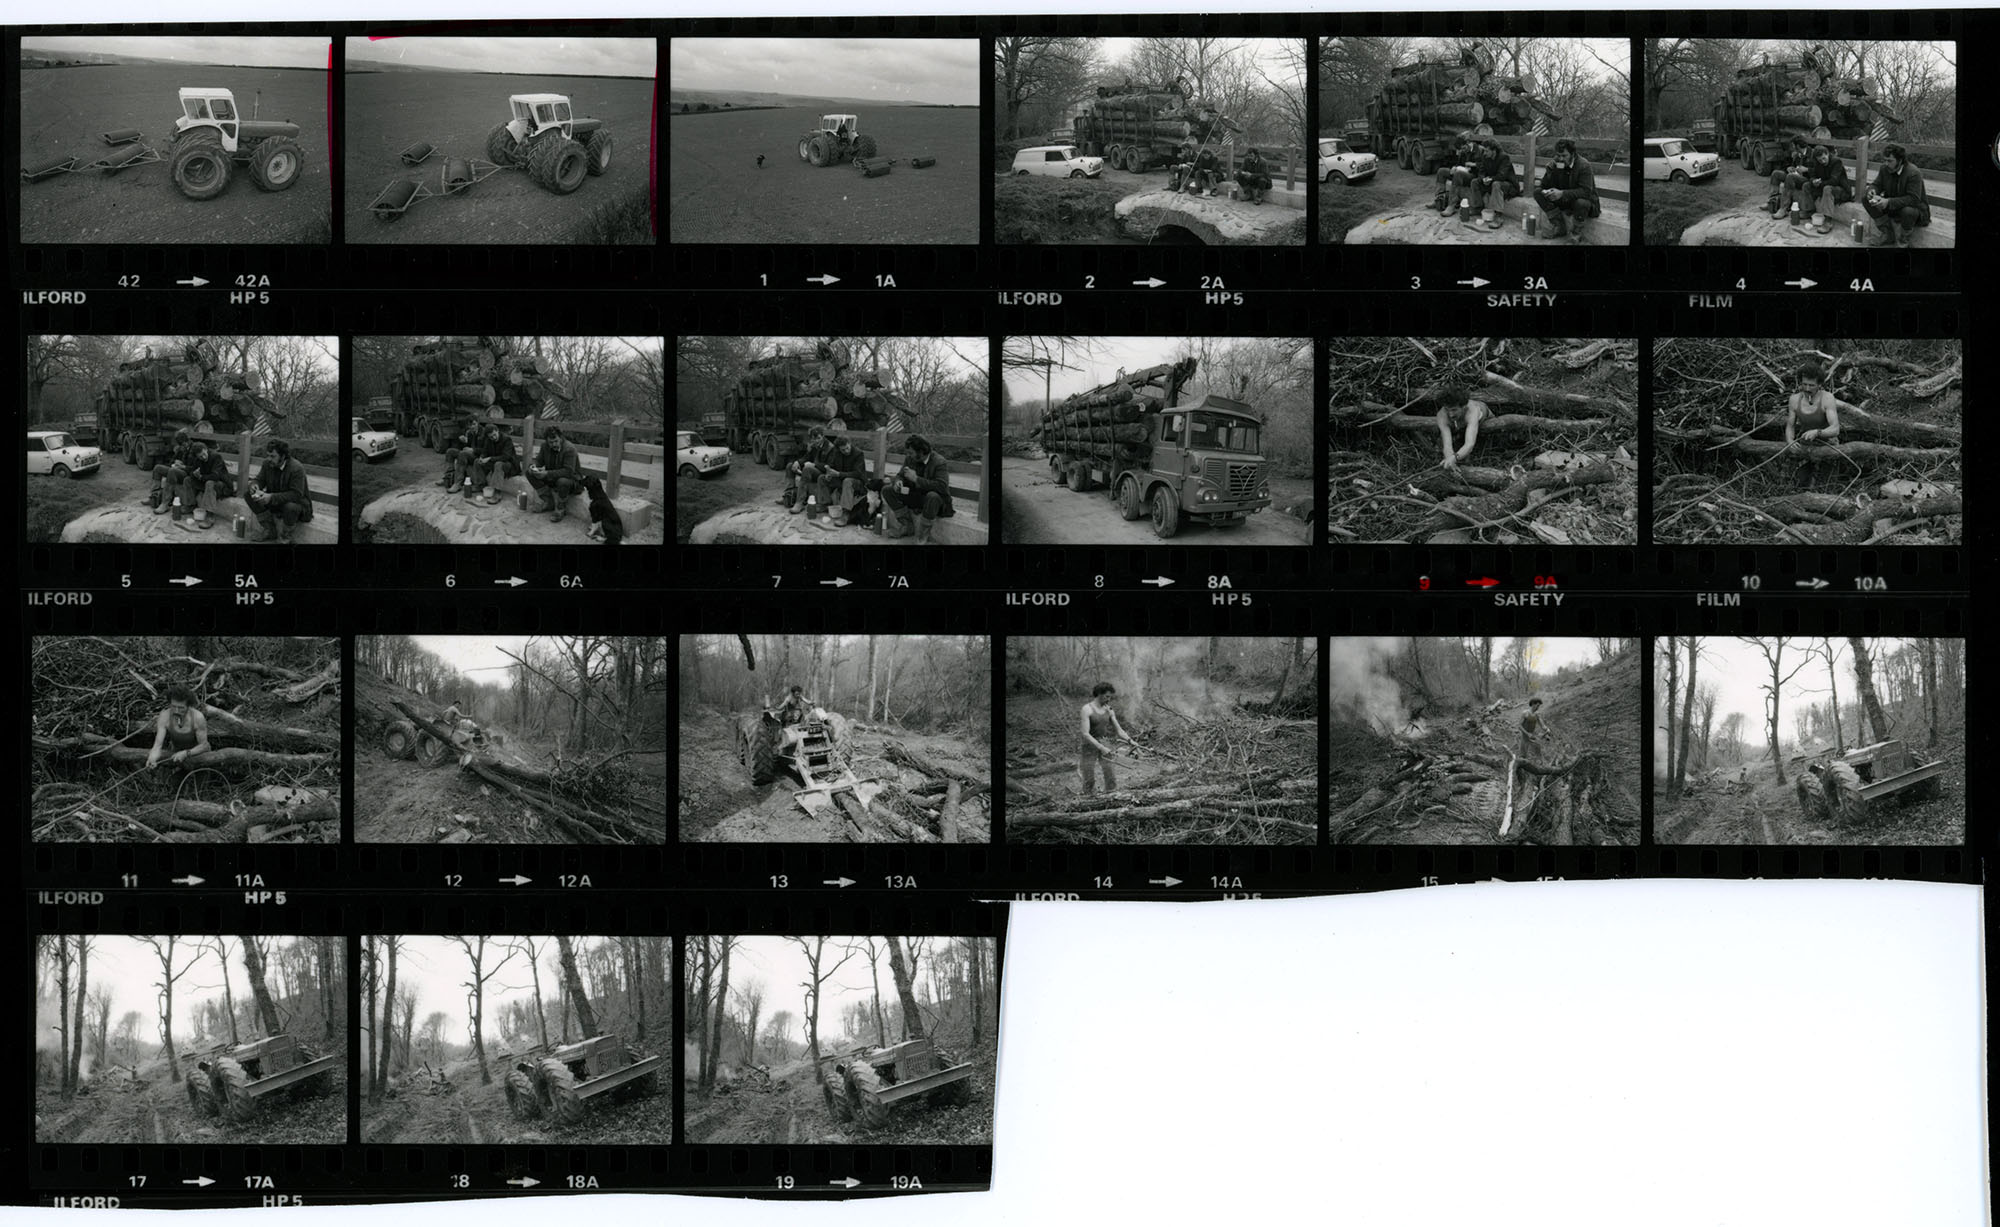 This contact sheet is in two parts. Both parts are shown on the same digital image. <br /> Part 1: Negative numbers 42 and 0-19. <br /> Part 2: Negative numbers 5B-7B.